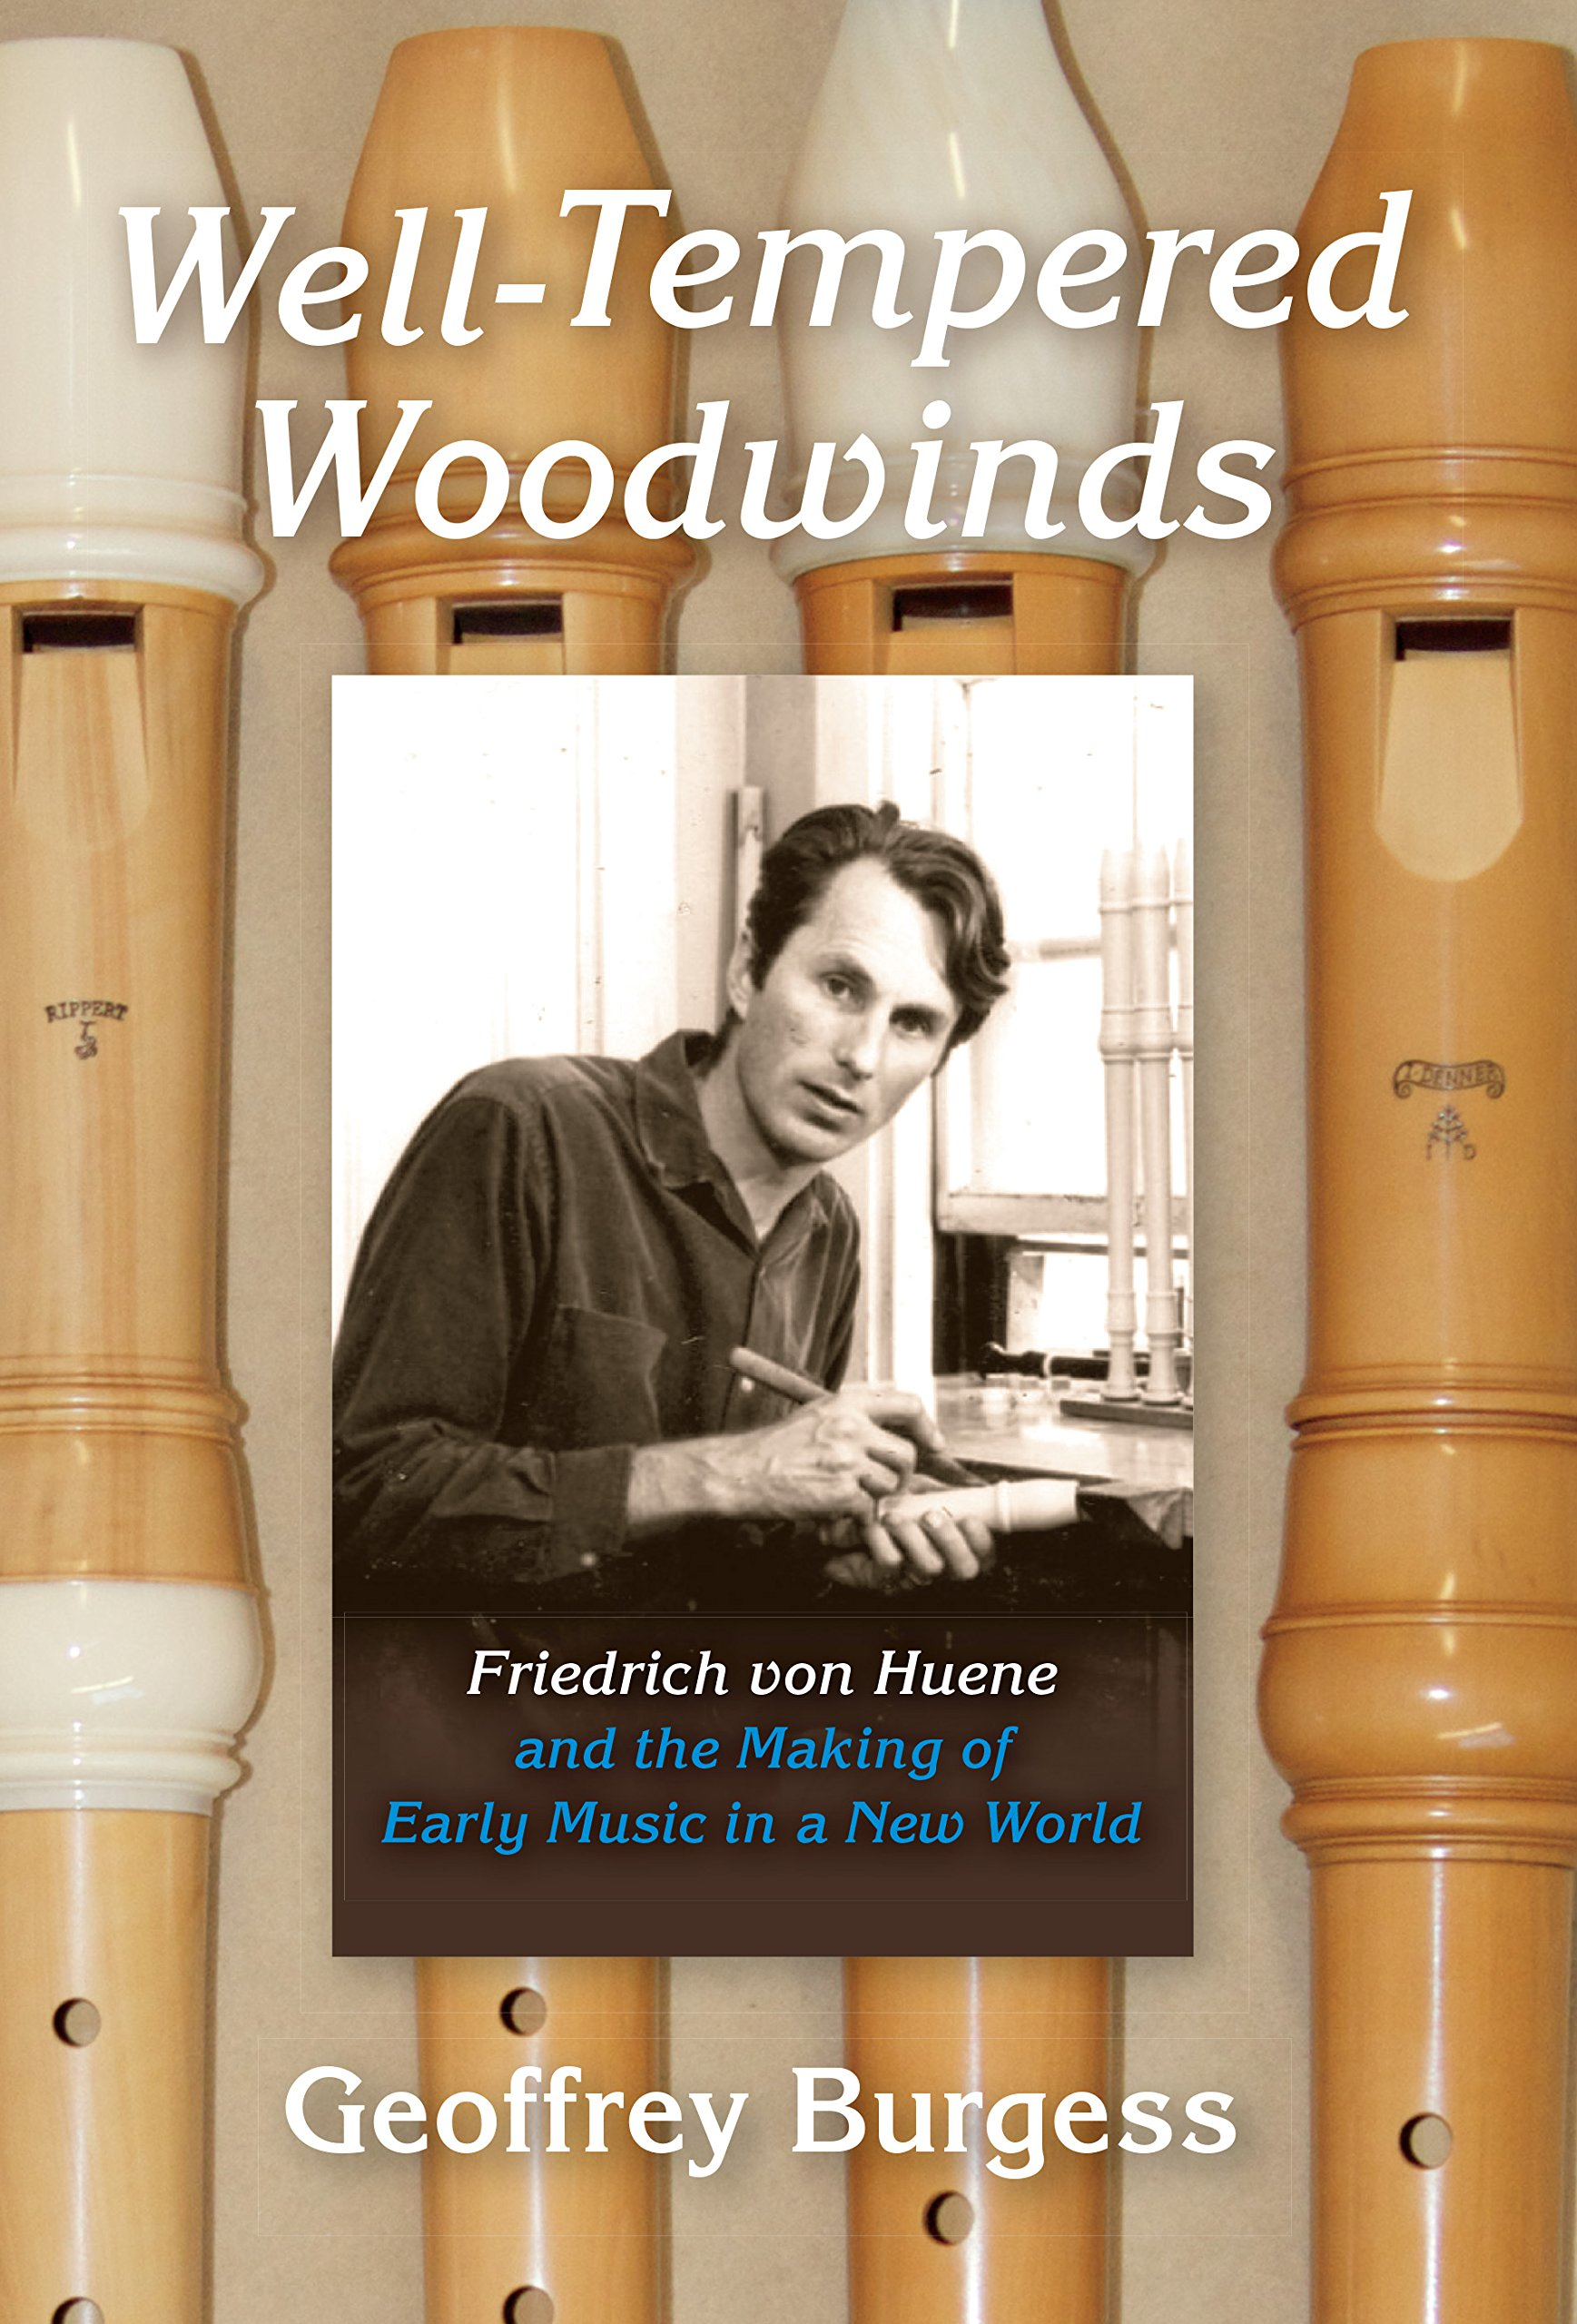 Download Well-Tempered Woodwinds: Friedrich von Huene and the Making of Early Music in a New World (Publications of the Early Music Institute) ebook